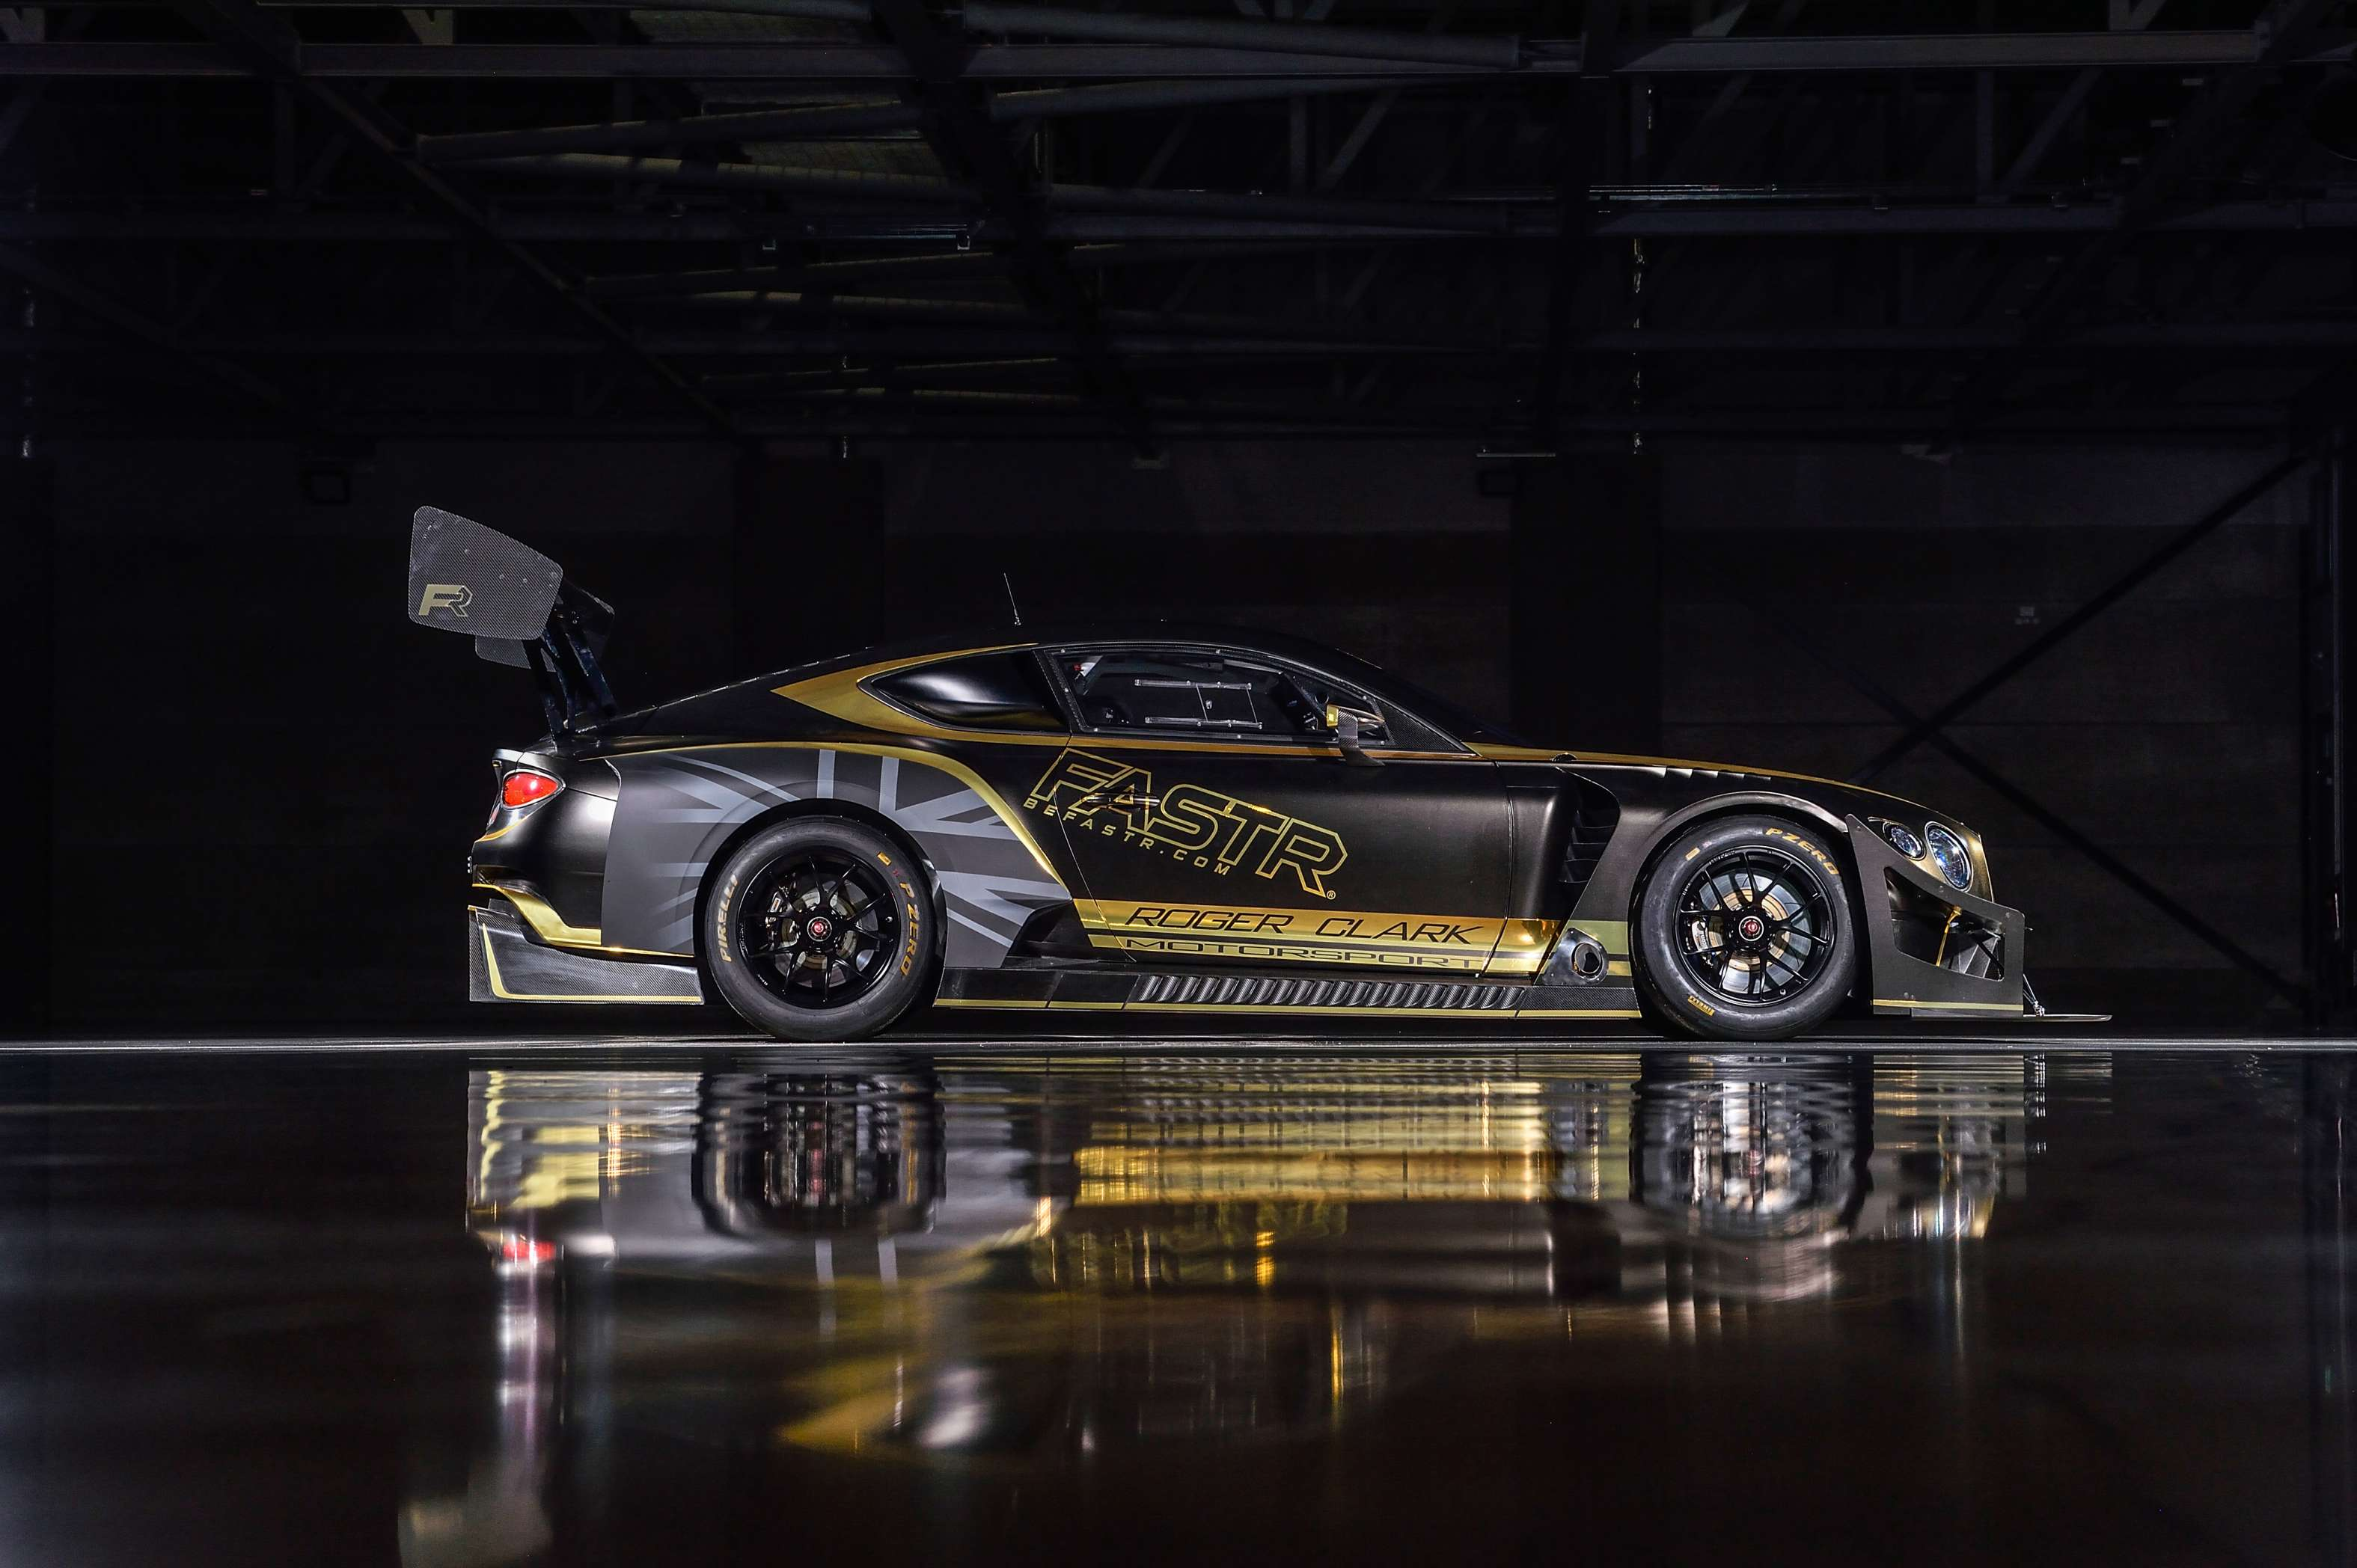 Renewable fuel to power continental gt3 to the clouds - bentley's 2021 pikes peak racer unveiled